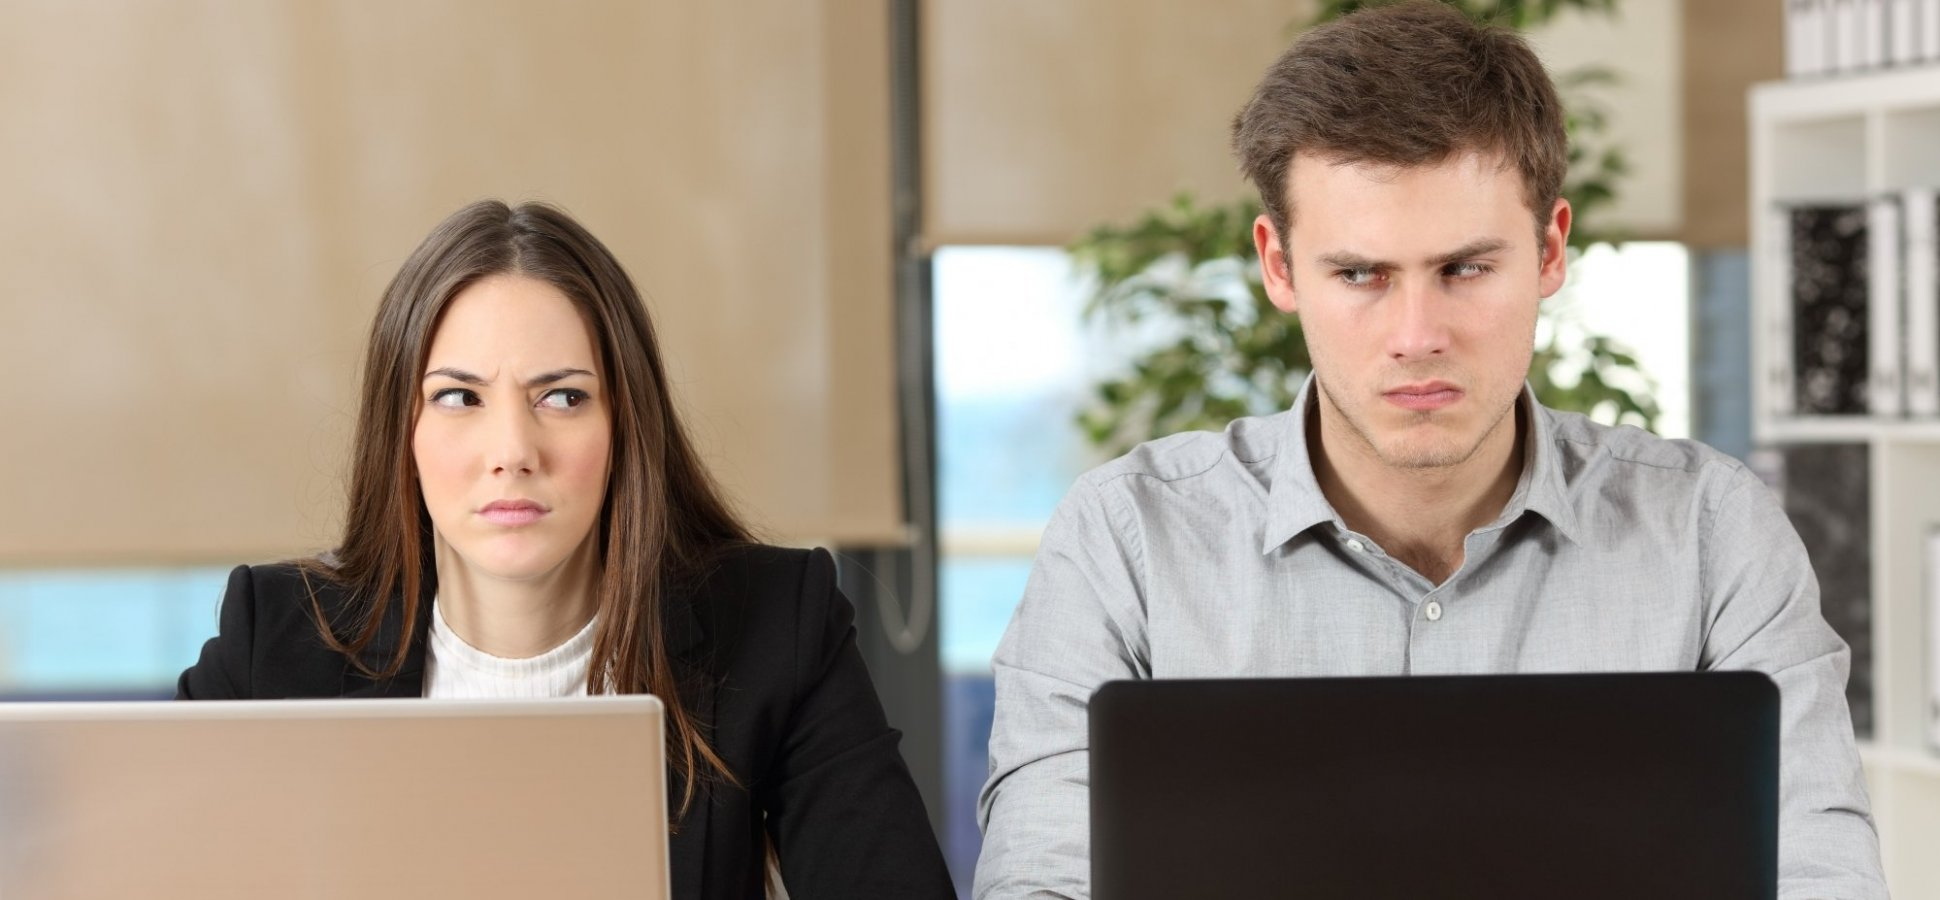 8 Signs You Are Being Taken Advantage of by Your Co-workers